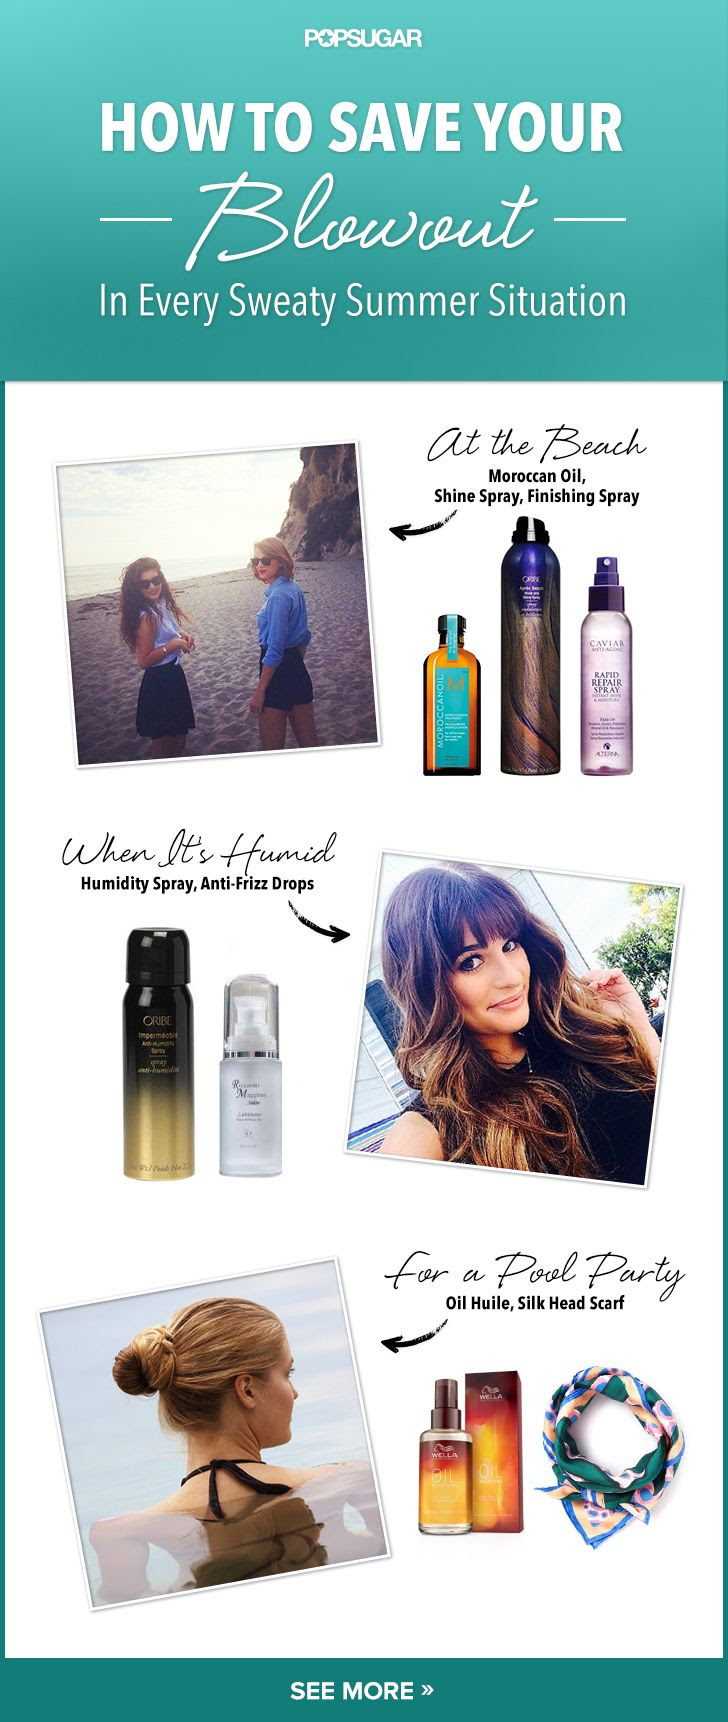 Make your blowout last no matter what the environment brings! #hair #hairtips #blowout